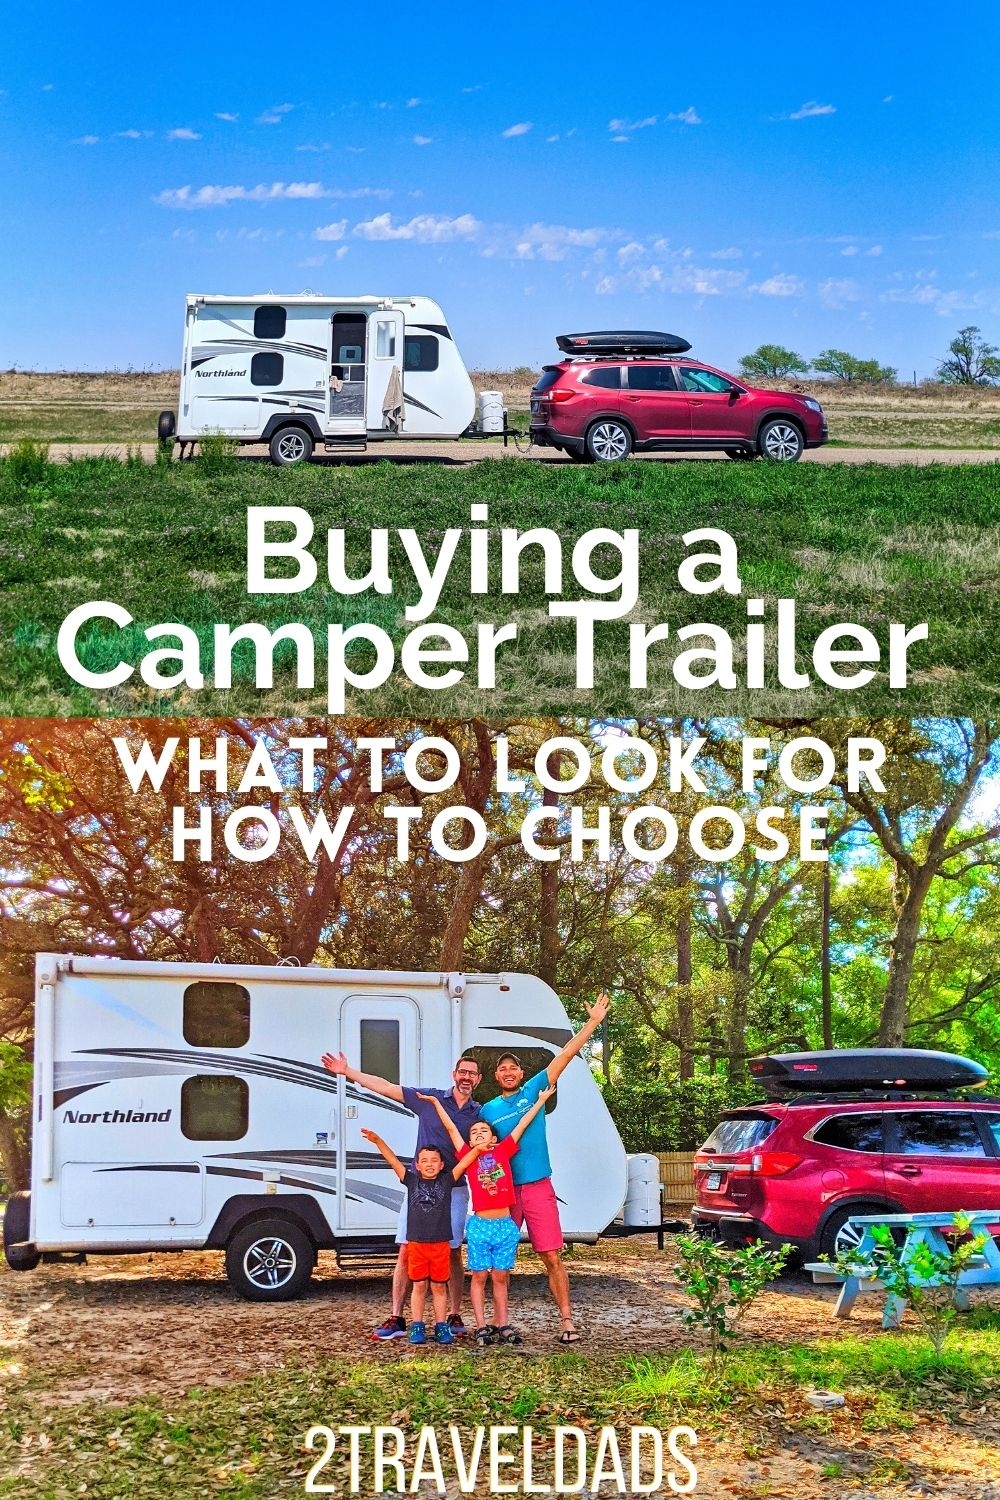 Buying a camper trailer can be complicated. We did a pandemic road trip across the USA in our camping trailer and learned a lot. These are our experiences and observations as new RV owners and in driving across the country during COVID19.